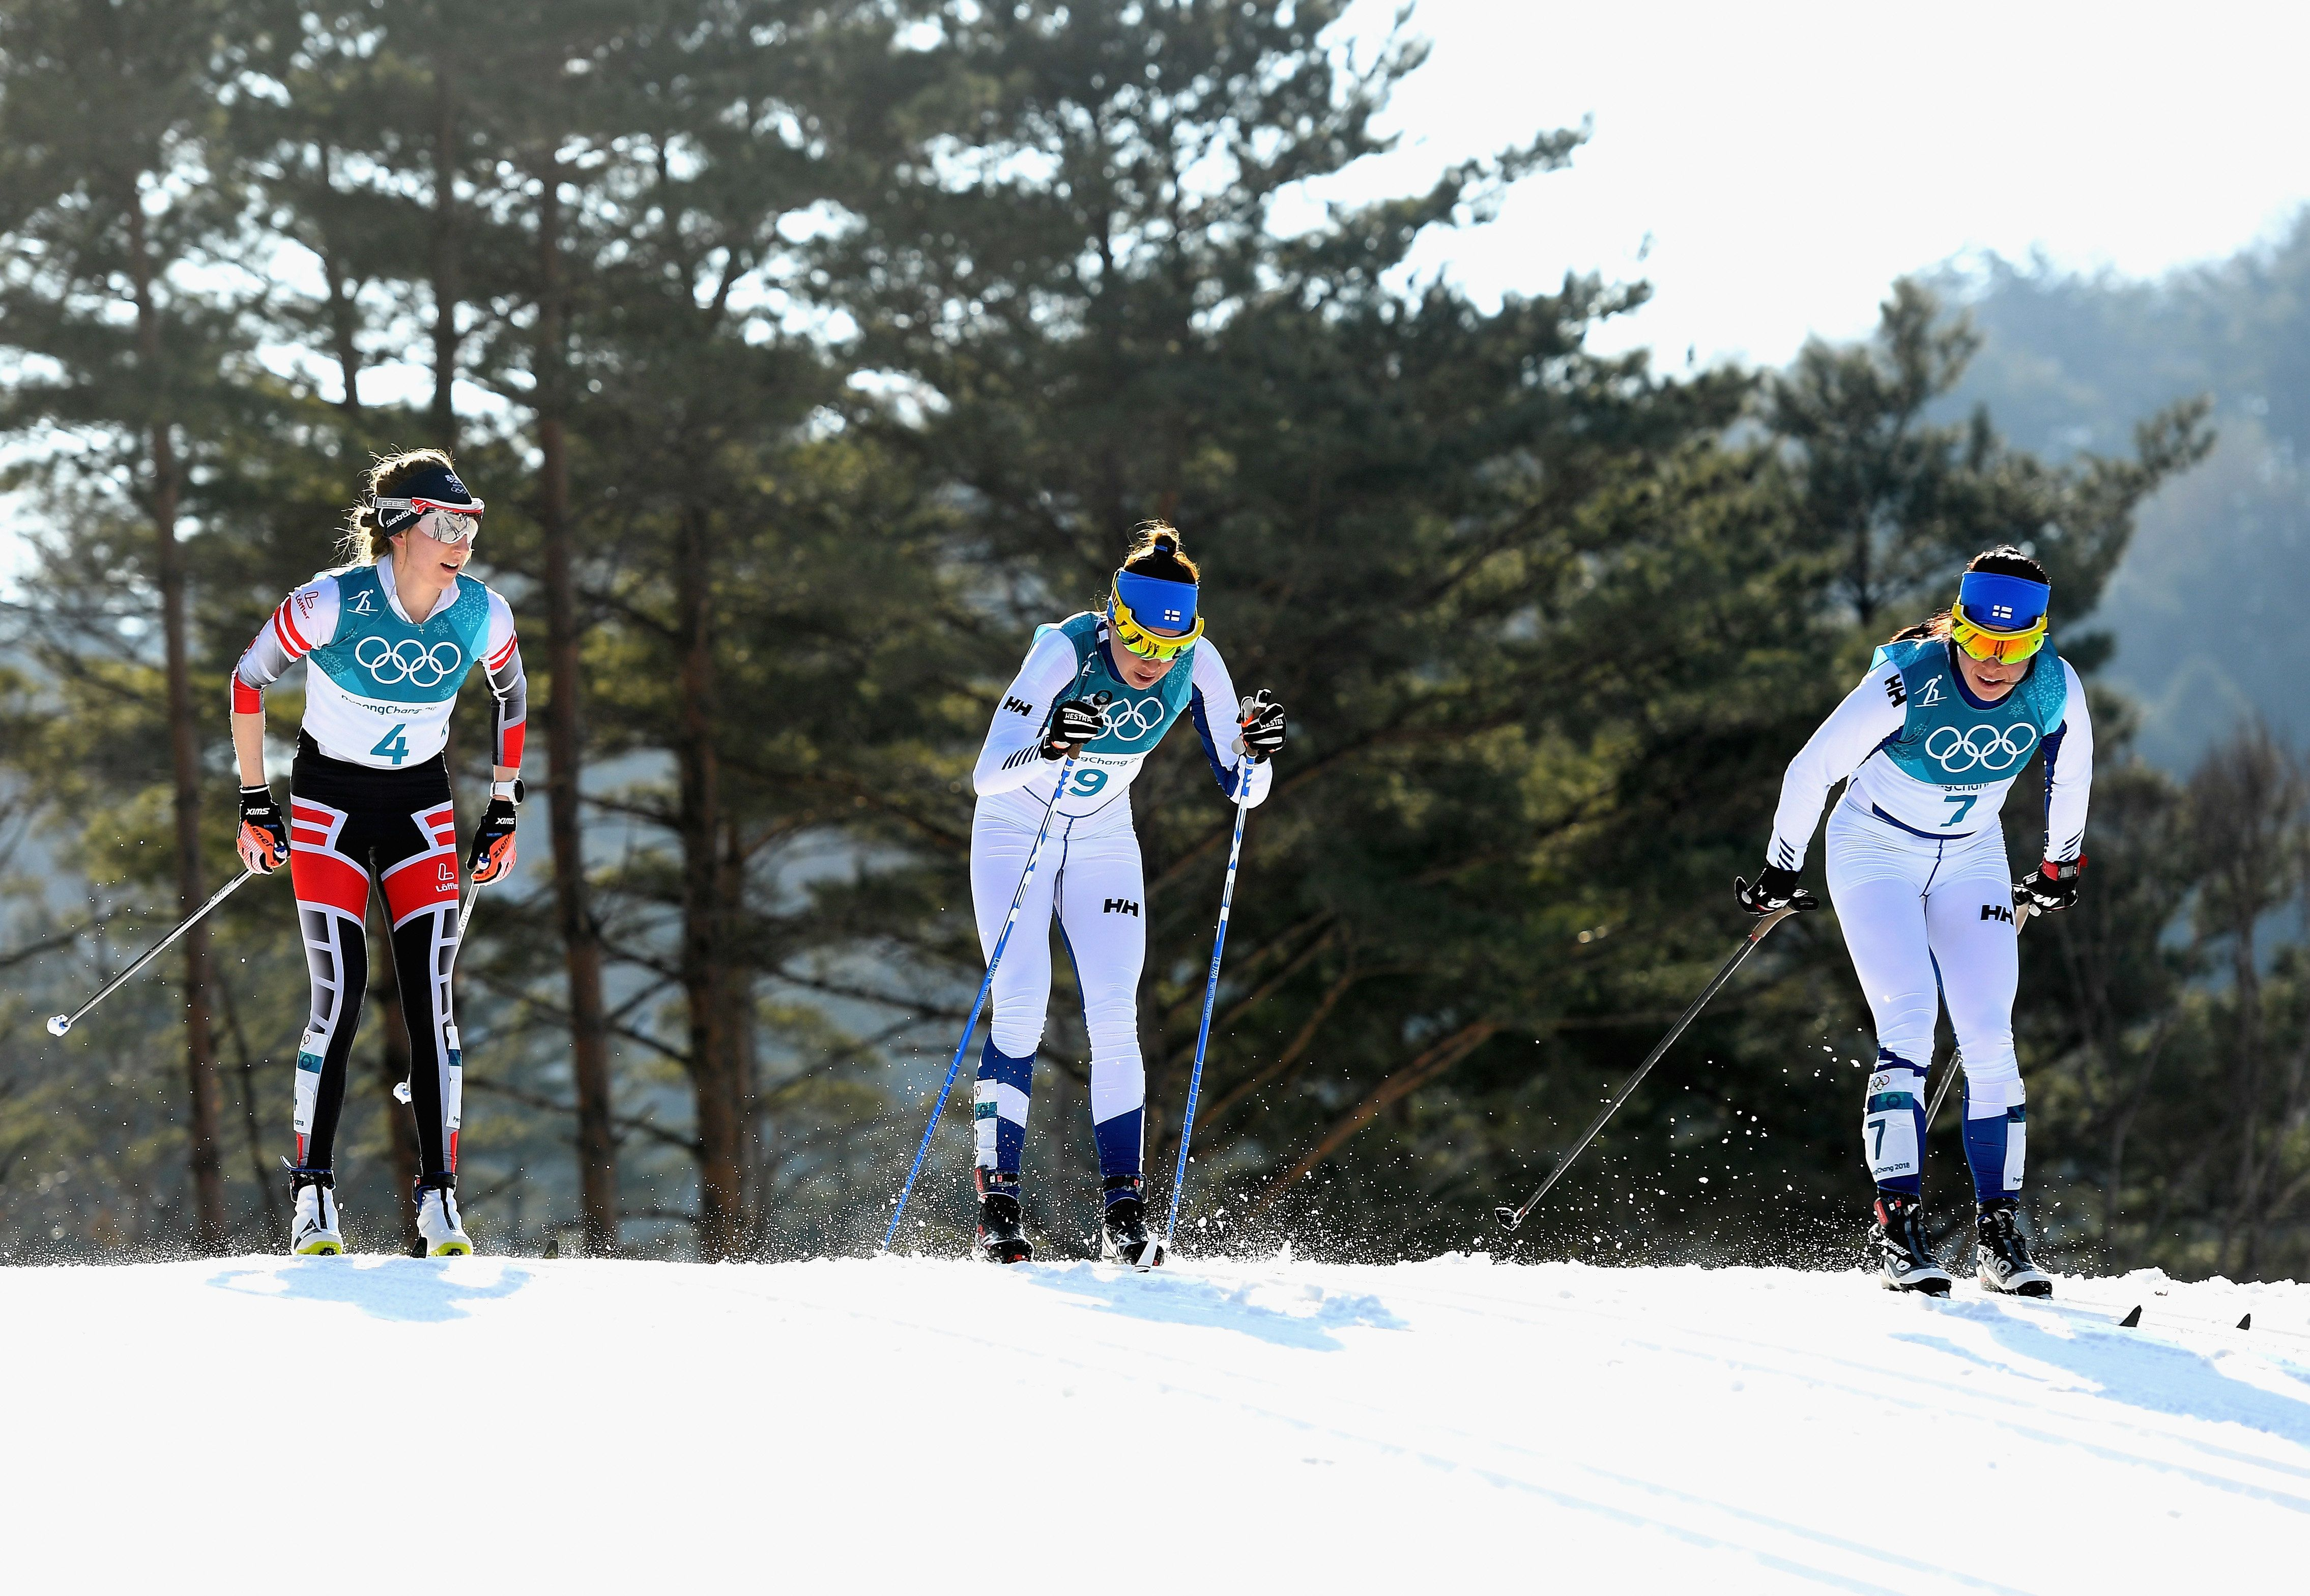 Austrian cross-country skier took a wrong turn costing her Olympic medal